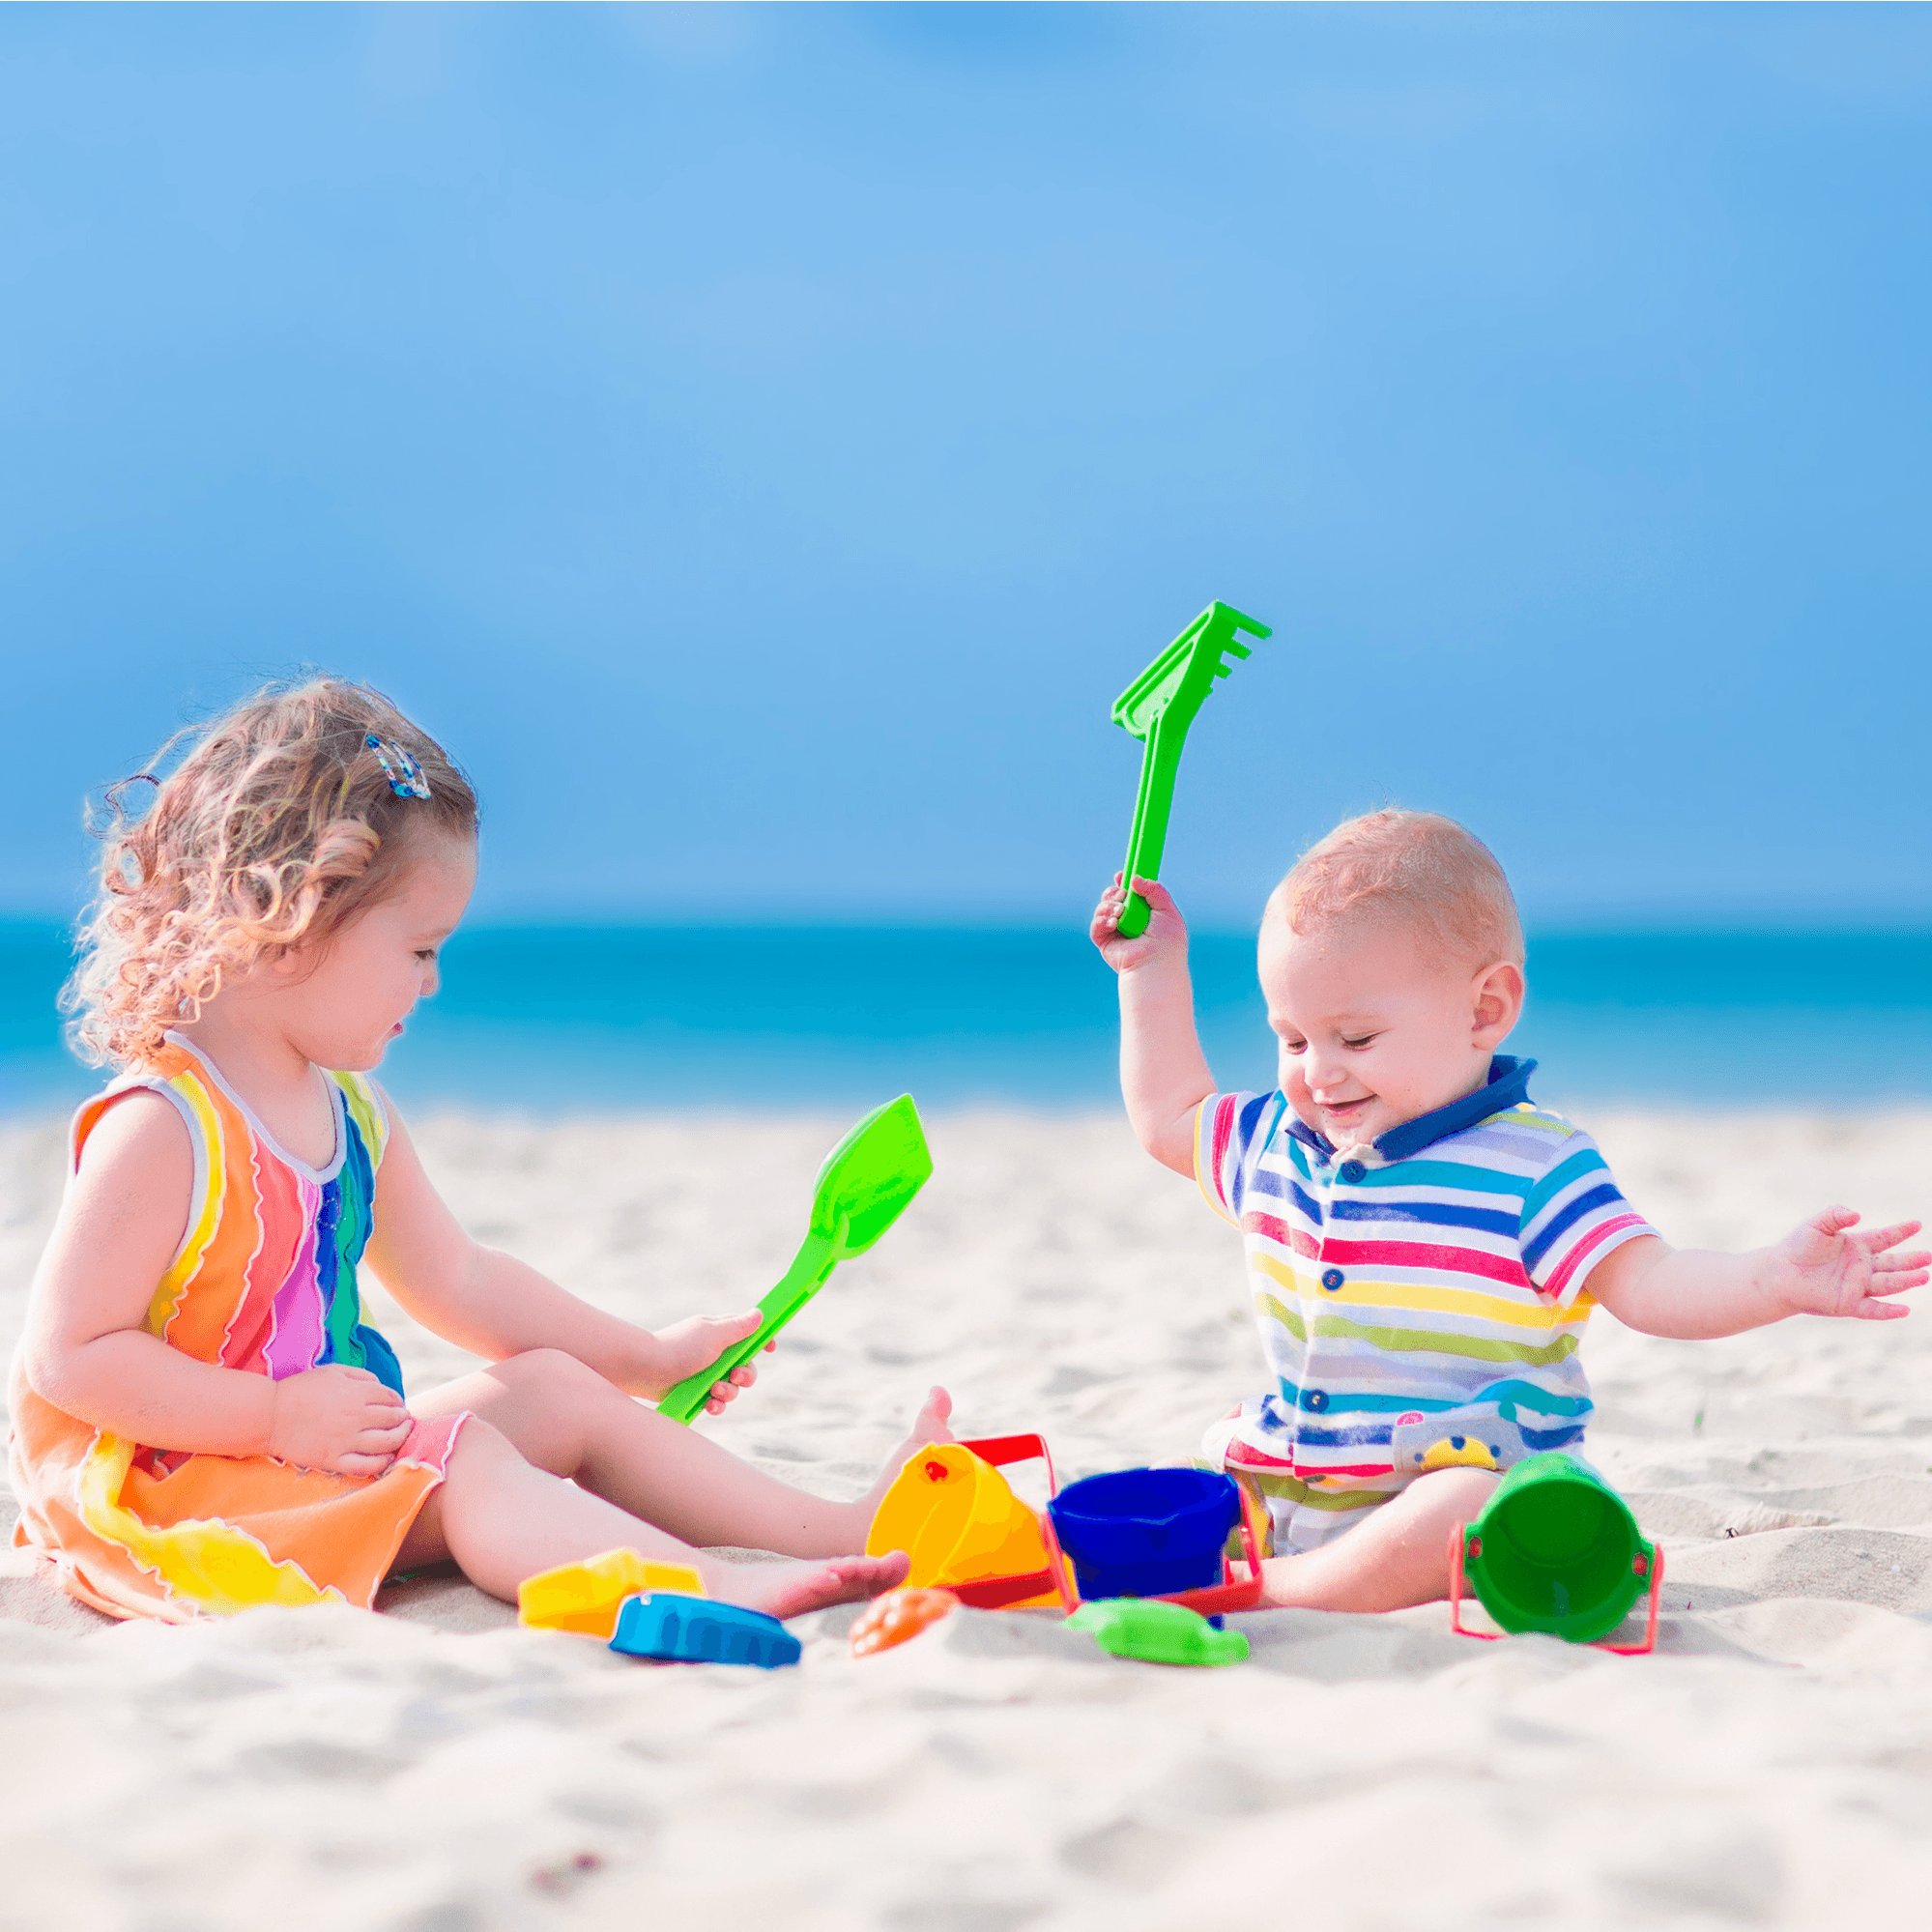 c91e67fe6 Tips for Cancun with Babies and Toddlers from Family Travel Experts ...